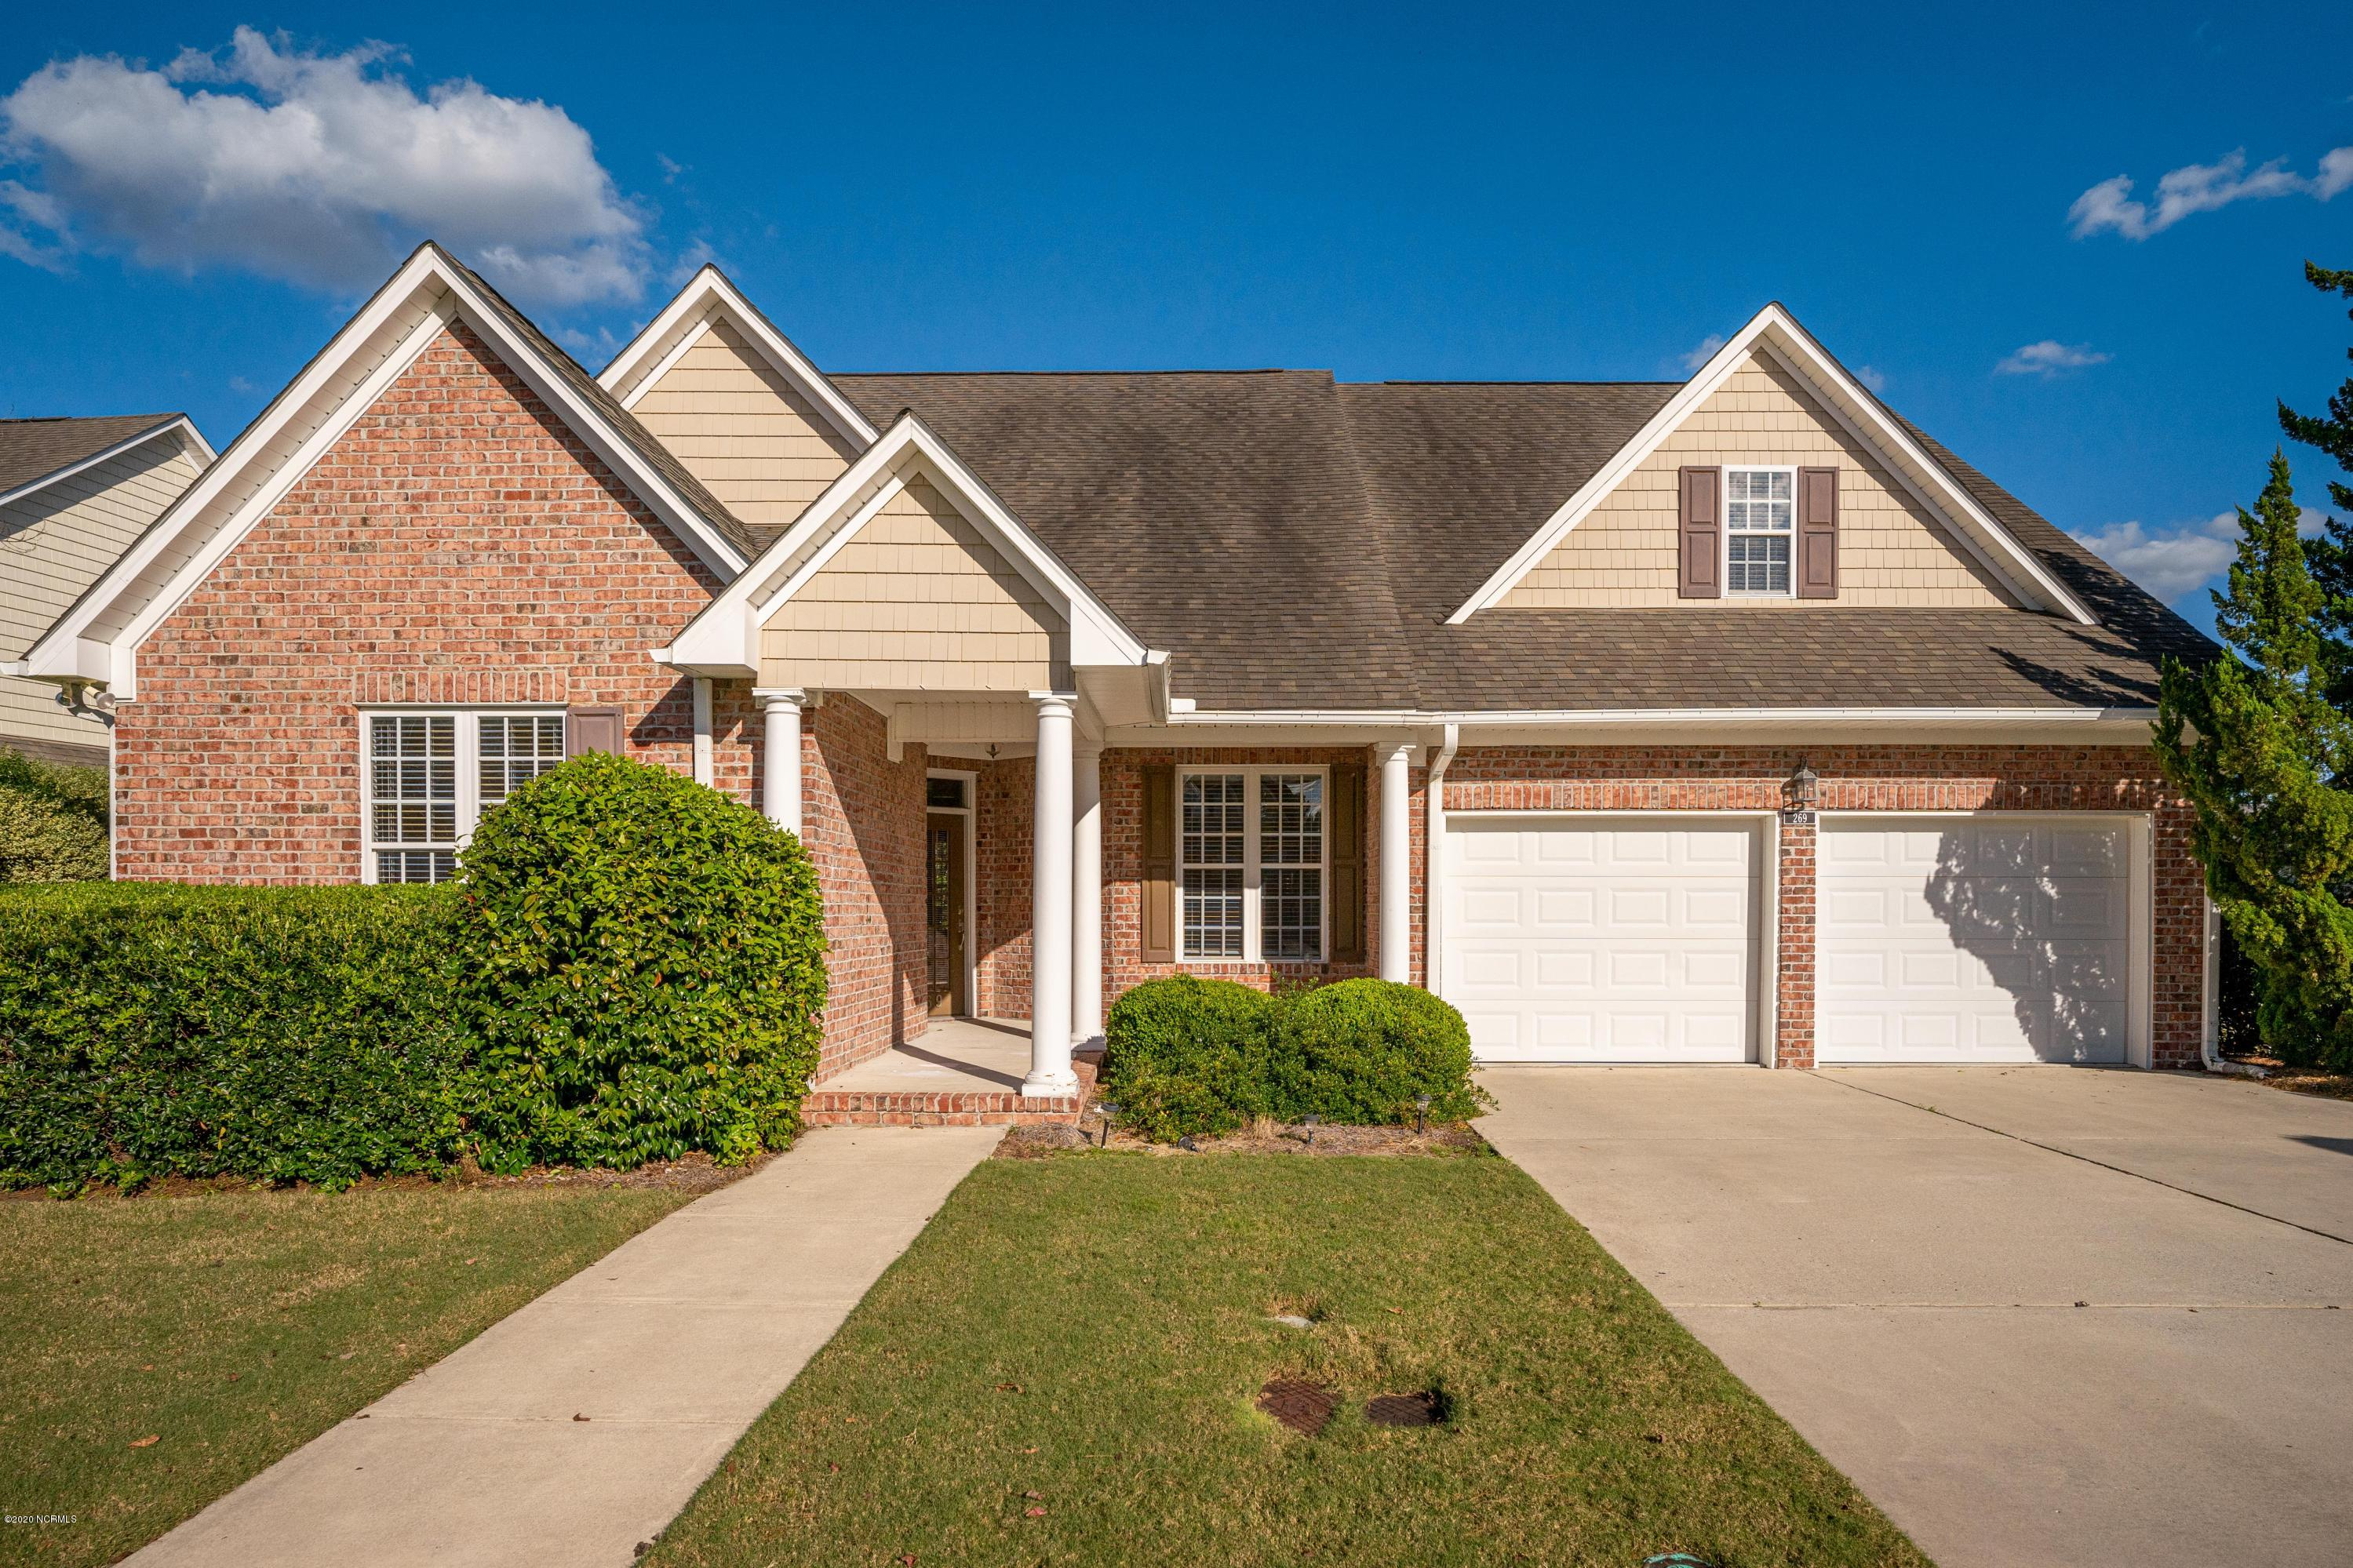 269 Morning View Way Leland, NC 28451